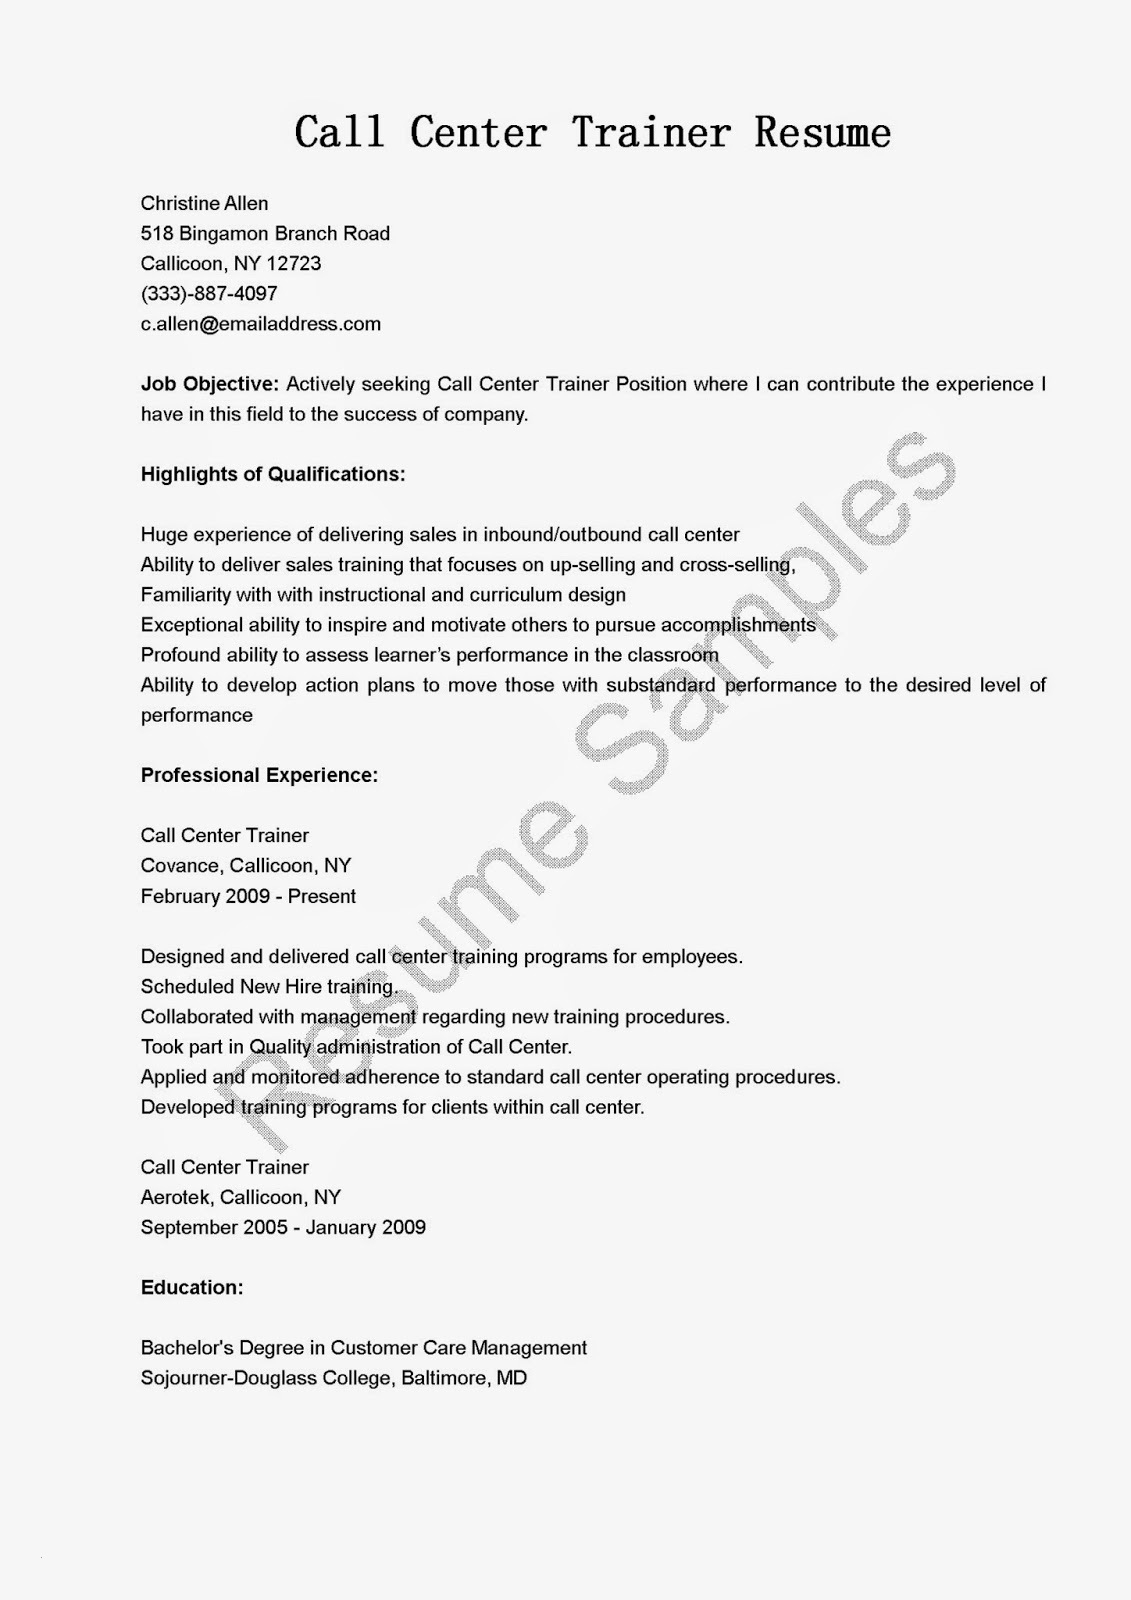 Inbound Call Center Job Description for Resume - Inbound Call Center Job Description for Resume Paragraphrewriter